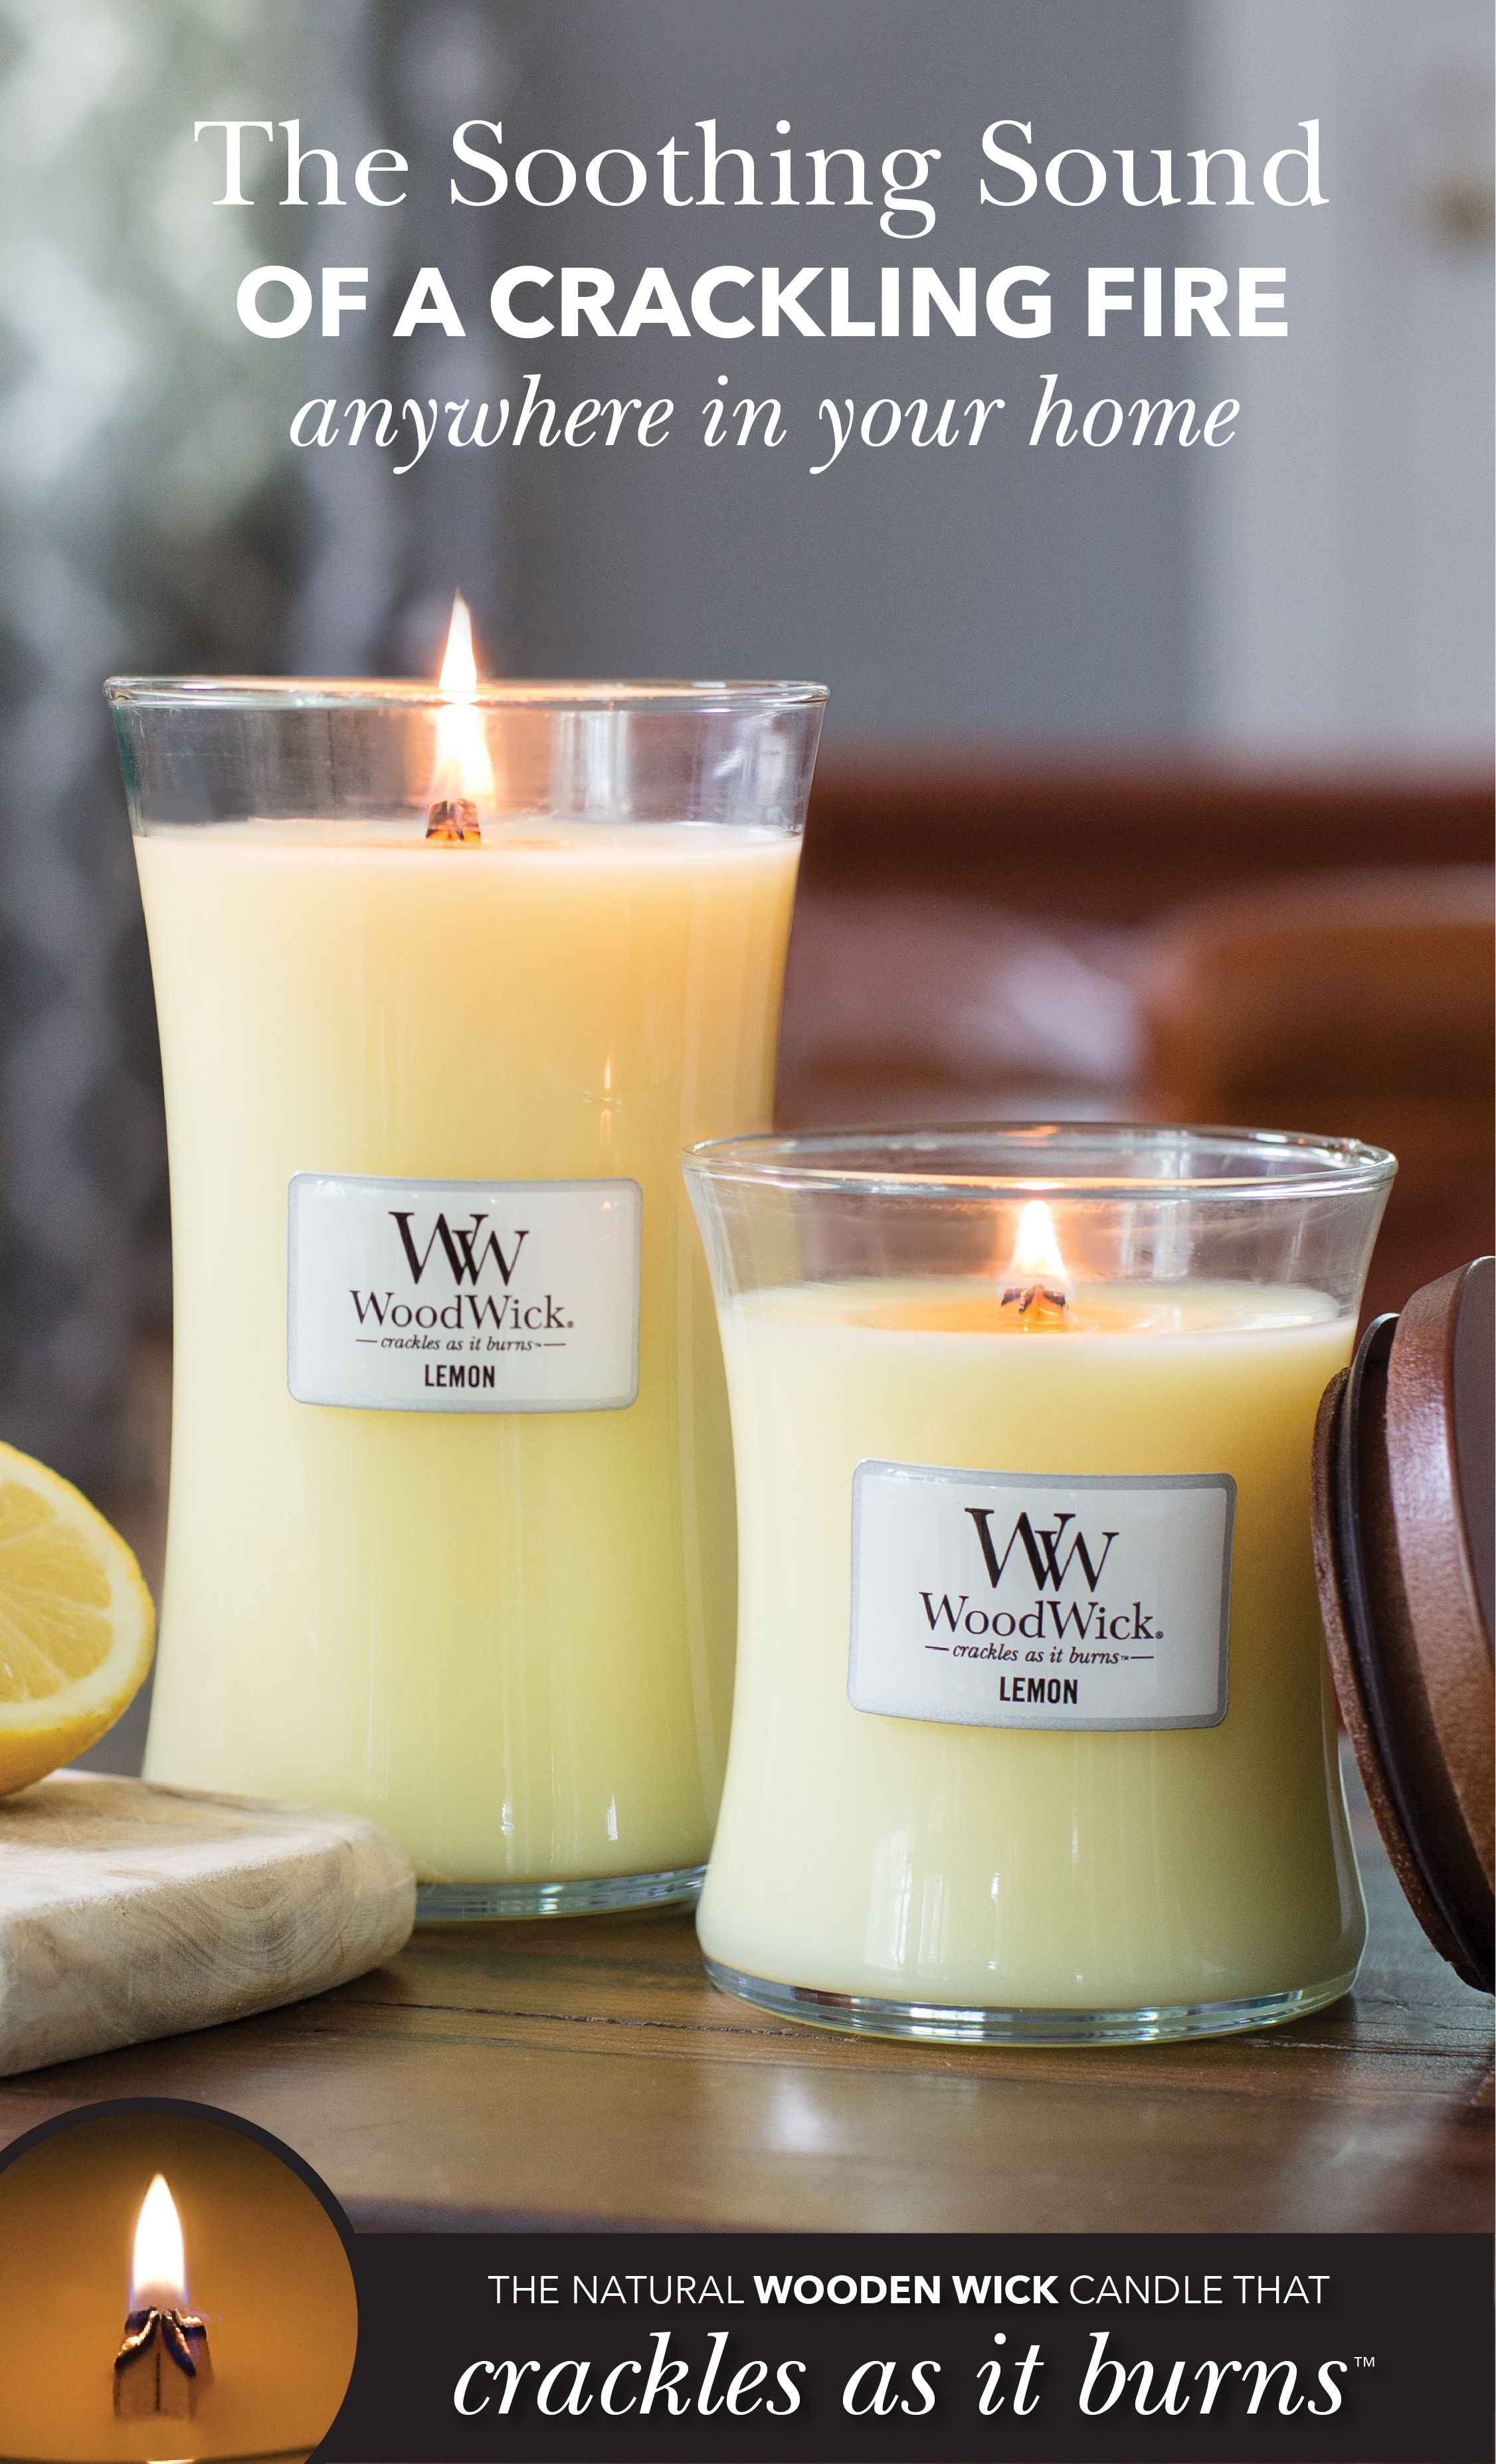 Woodwick Candles Feature A Natural Wooden Wick That Creates A